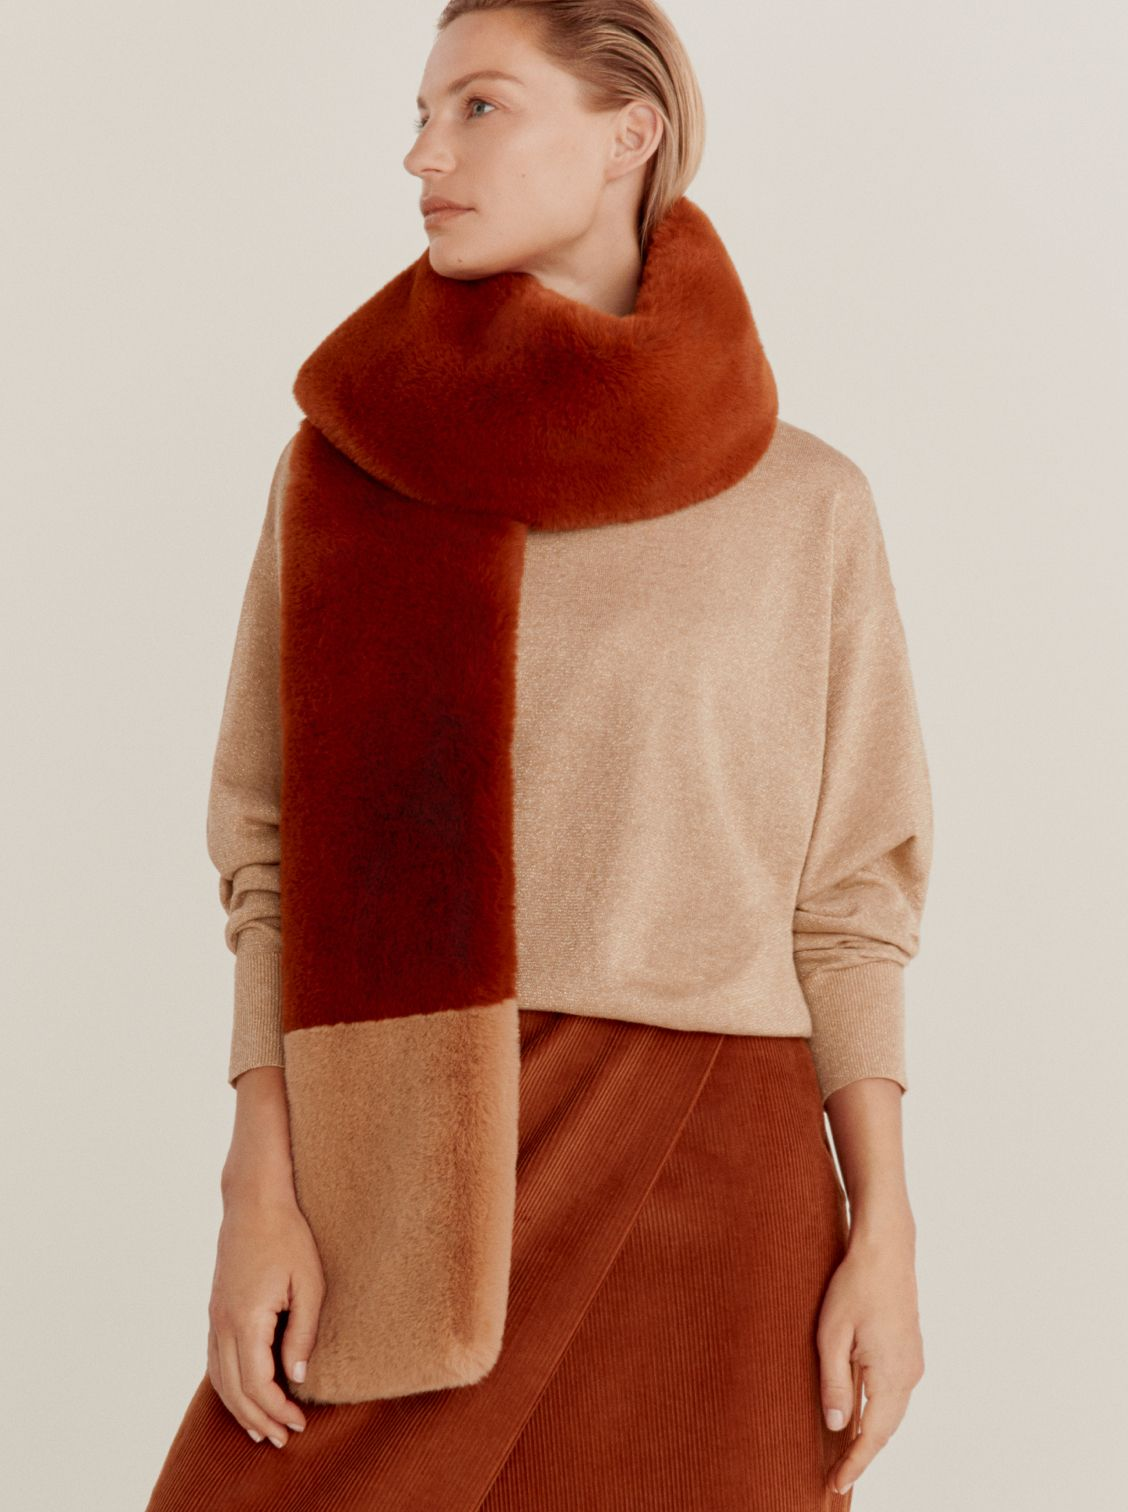 20% off Cashmere